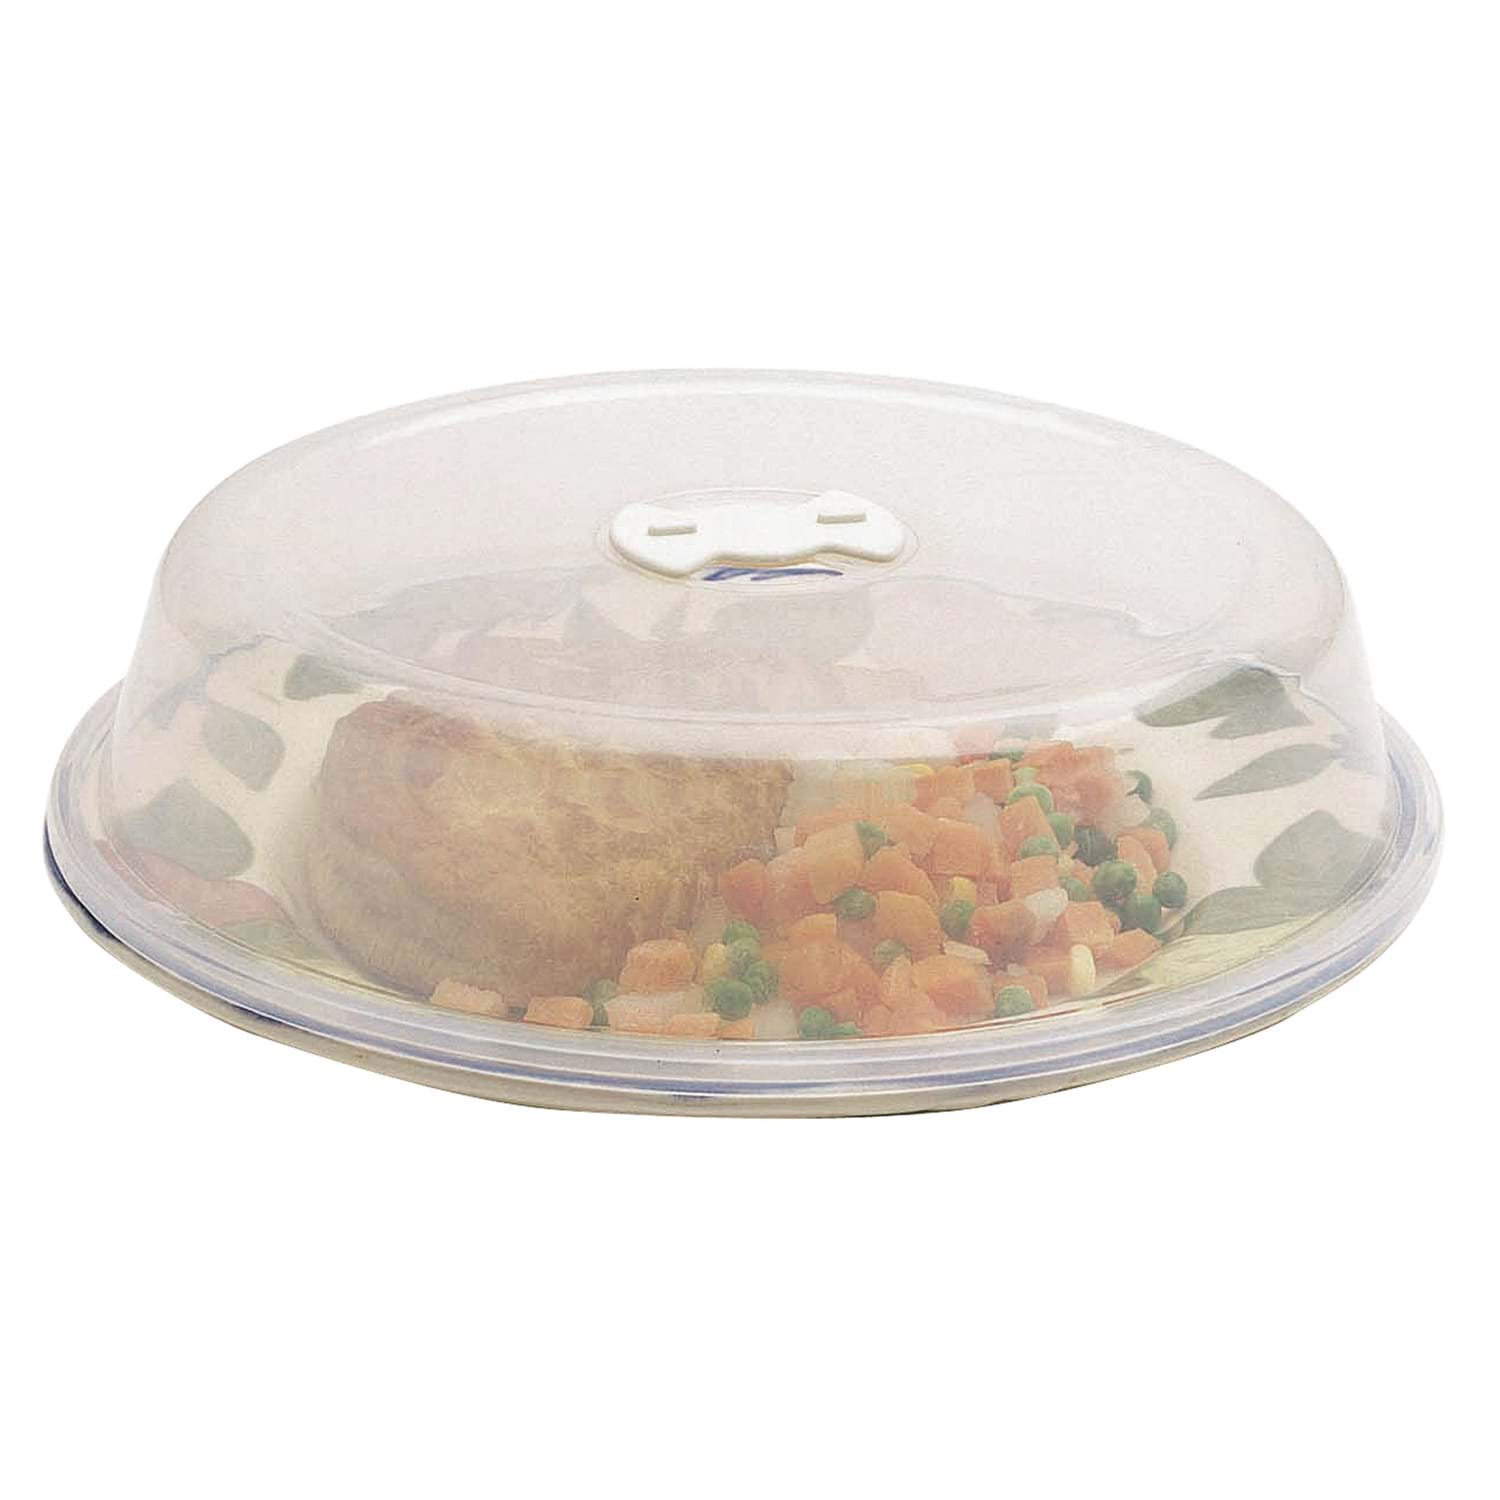 Image of Kitchencraft Microwave Plate Cover